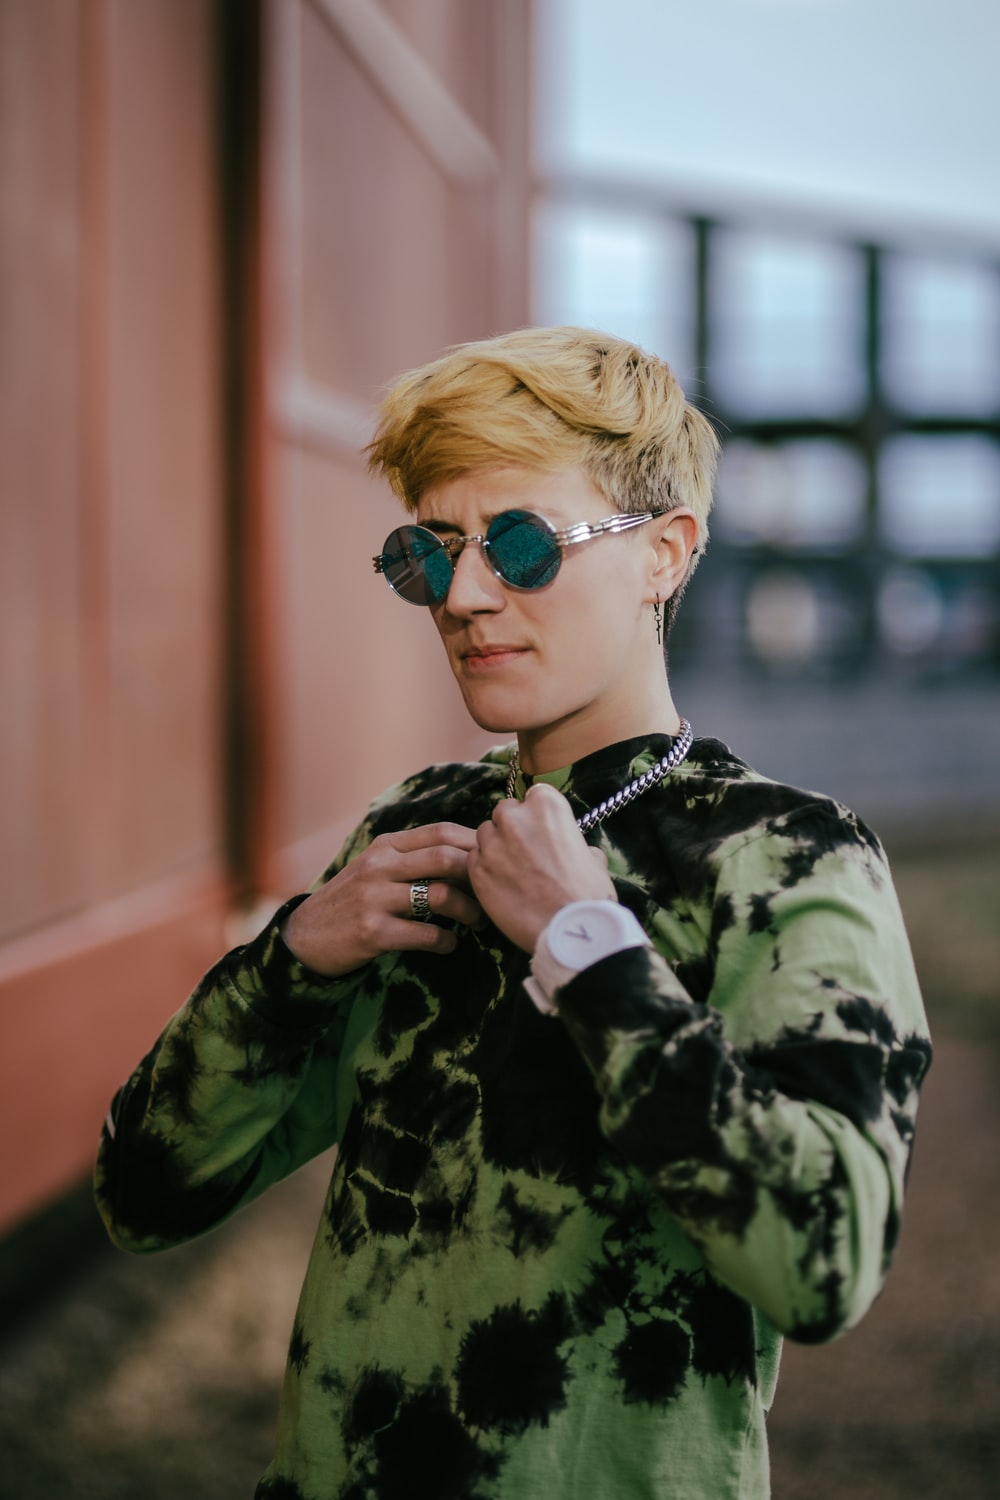 boy in green and black camouflage jacket wearing blue sunglasses